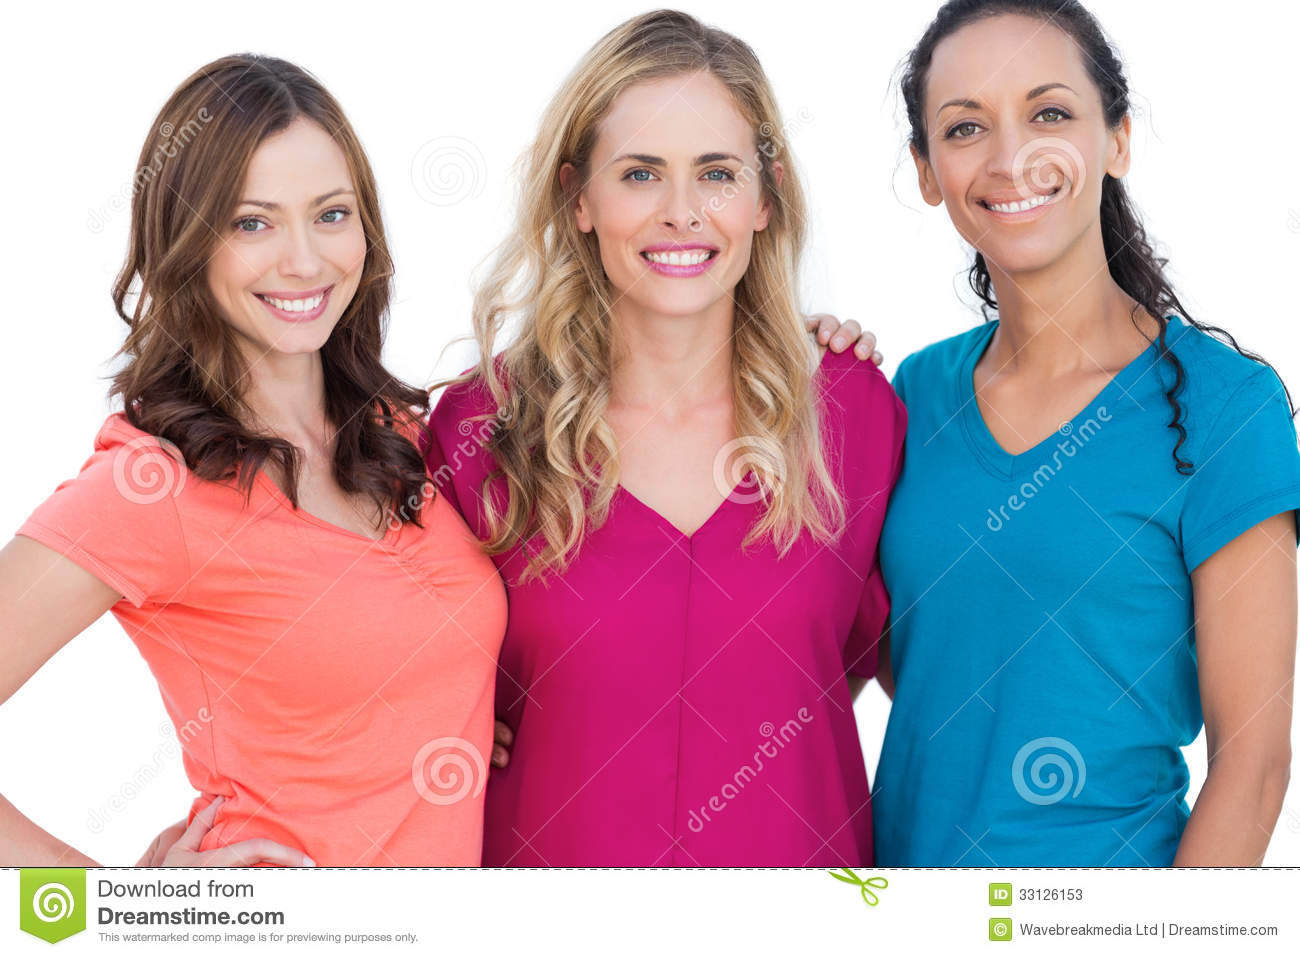 Happy models posing with colorful t shirts on white background.